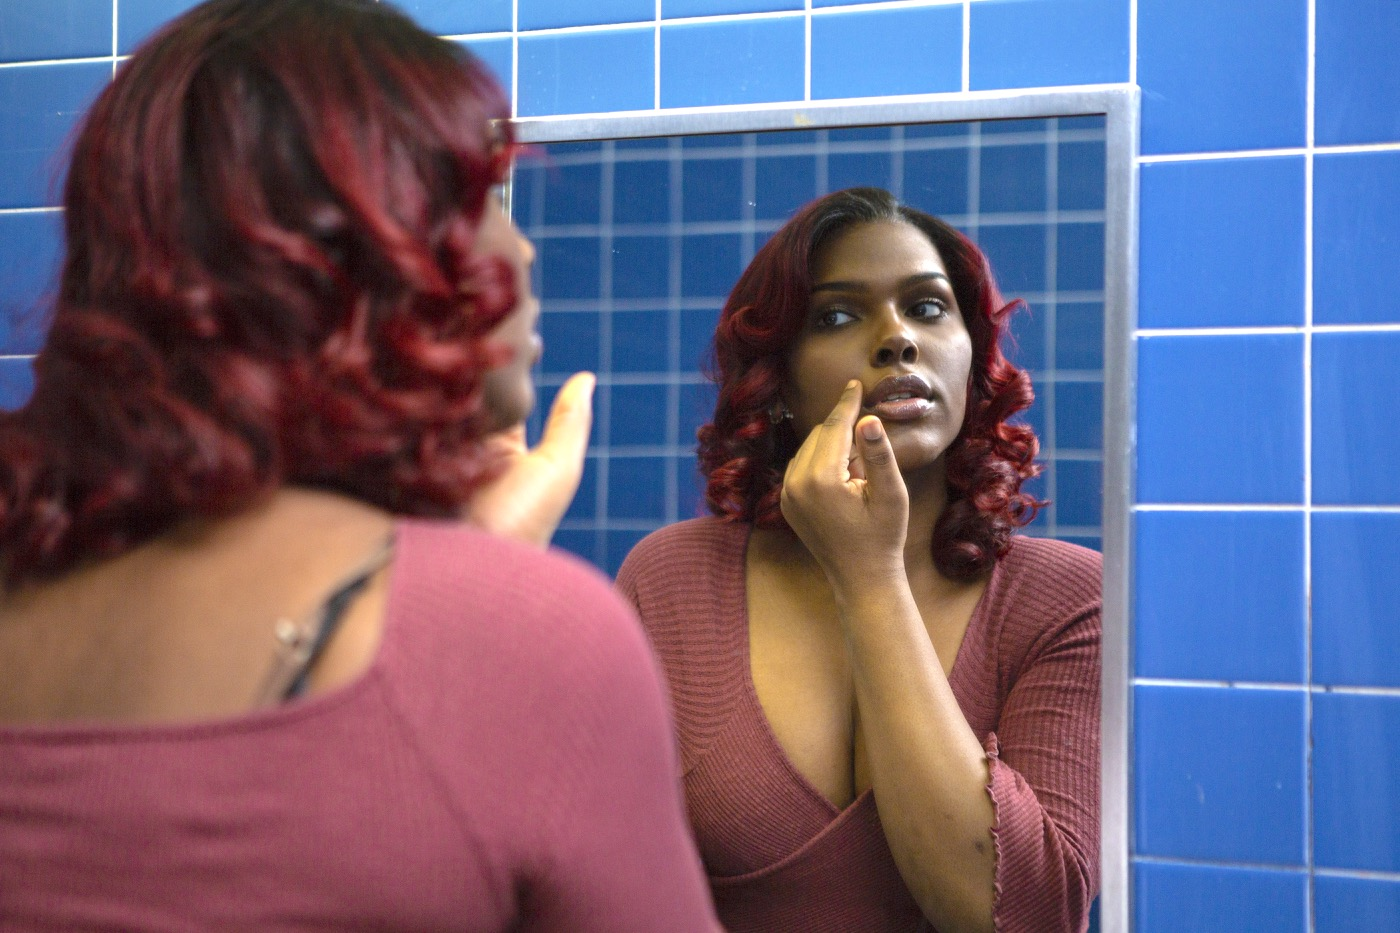 A black young transgender woman looking at her face in the bathroom mirror at school.